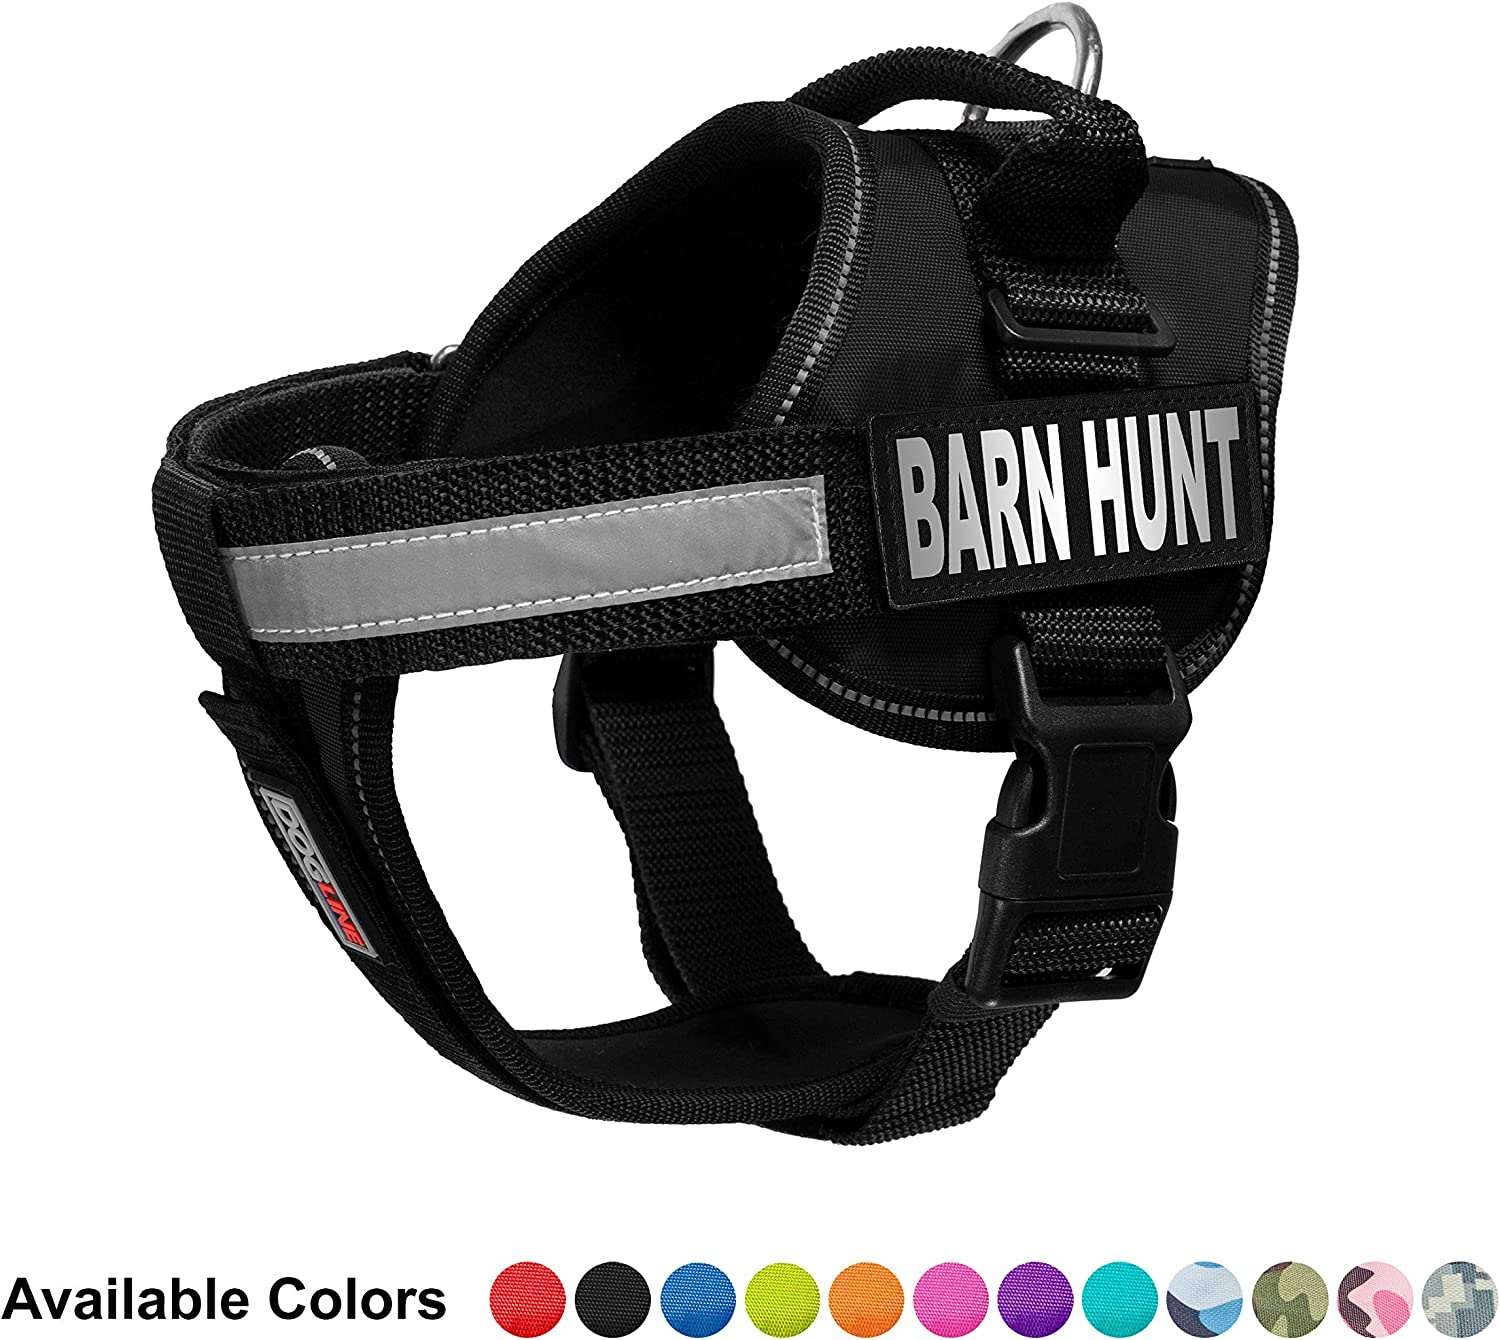 Dogline Vest Harness for Dogs and 2 Removable Barn Hunt Patches, Small 18 to 25 , Black